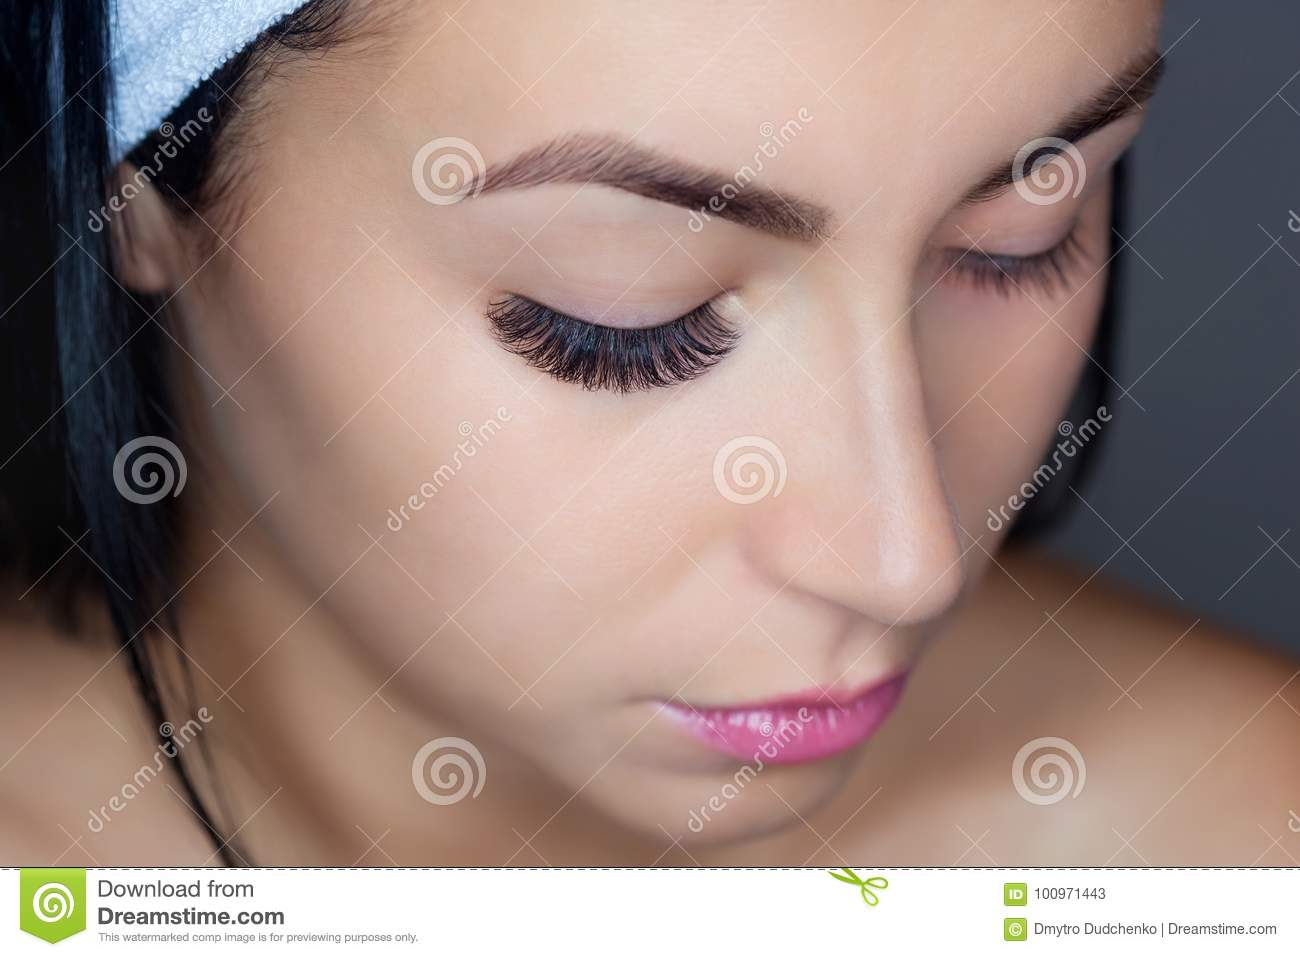 Eyelash Removal Procedure Close Up Beautiful Woman With Long Lashes